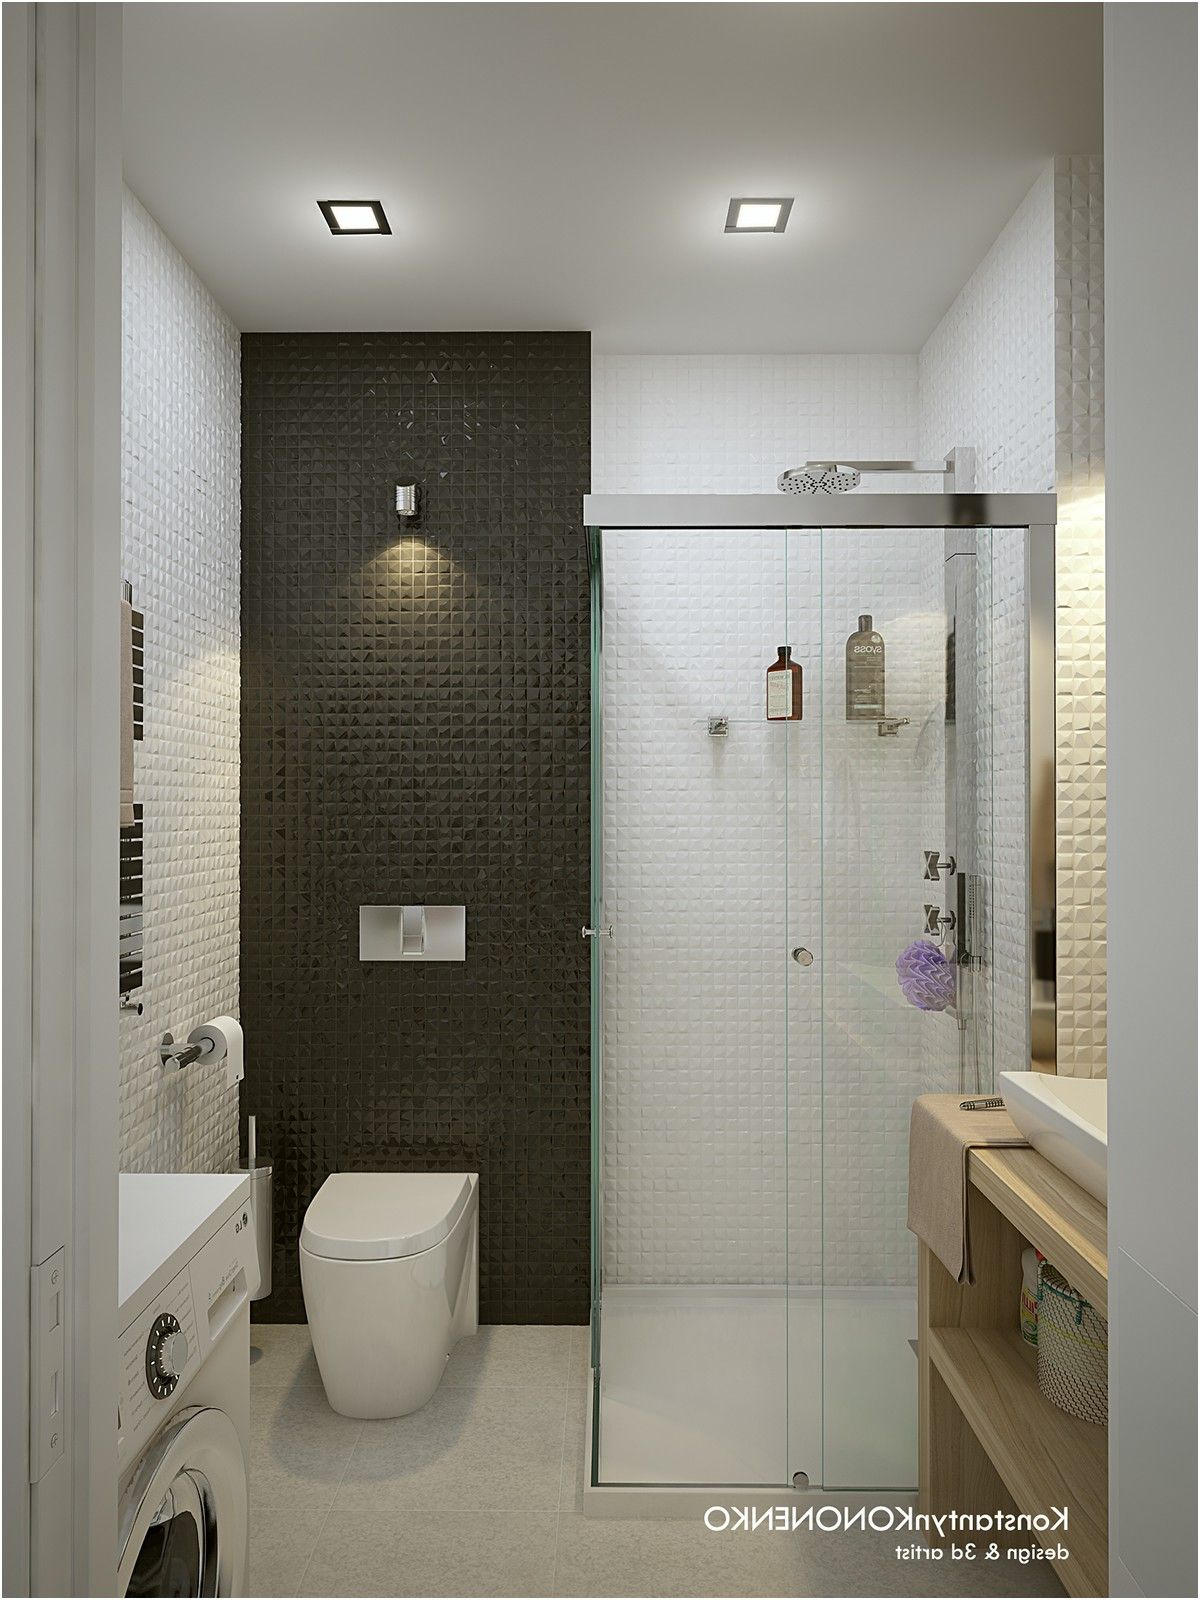 5 Apartment Designs Under 500 Square Feet From 40 Sq Ft Bathroom Design Bathroom Design Software Bathroom Design Small Modern Latest Bathroom Designs